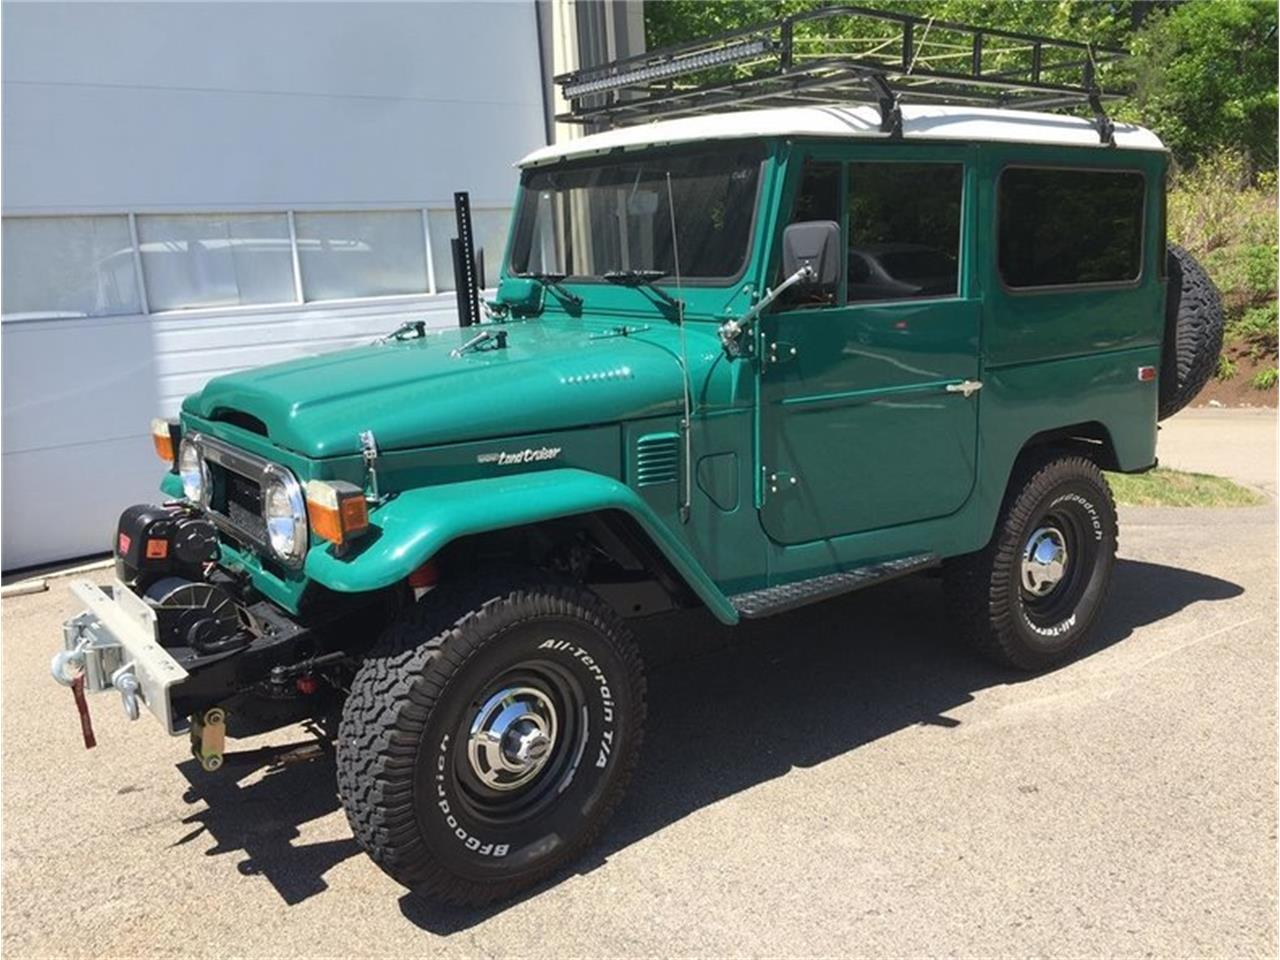 Toyota Fj40 For Sale >> For Sale 1978 Toyota Land Cruiser Fj40 In Holliston Massachusetts